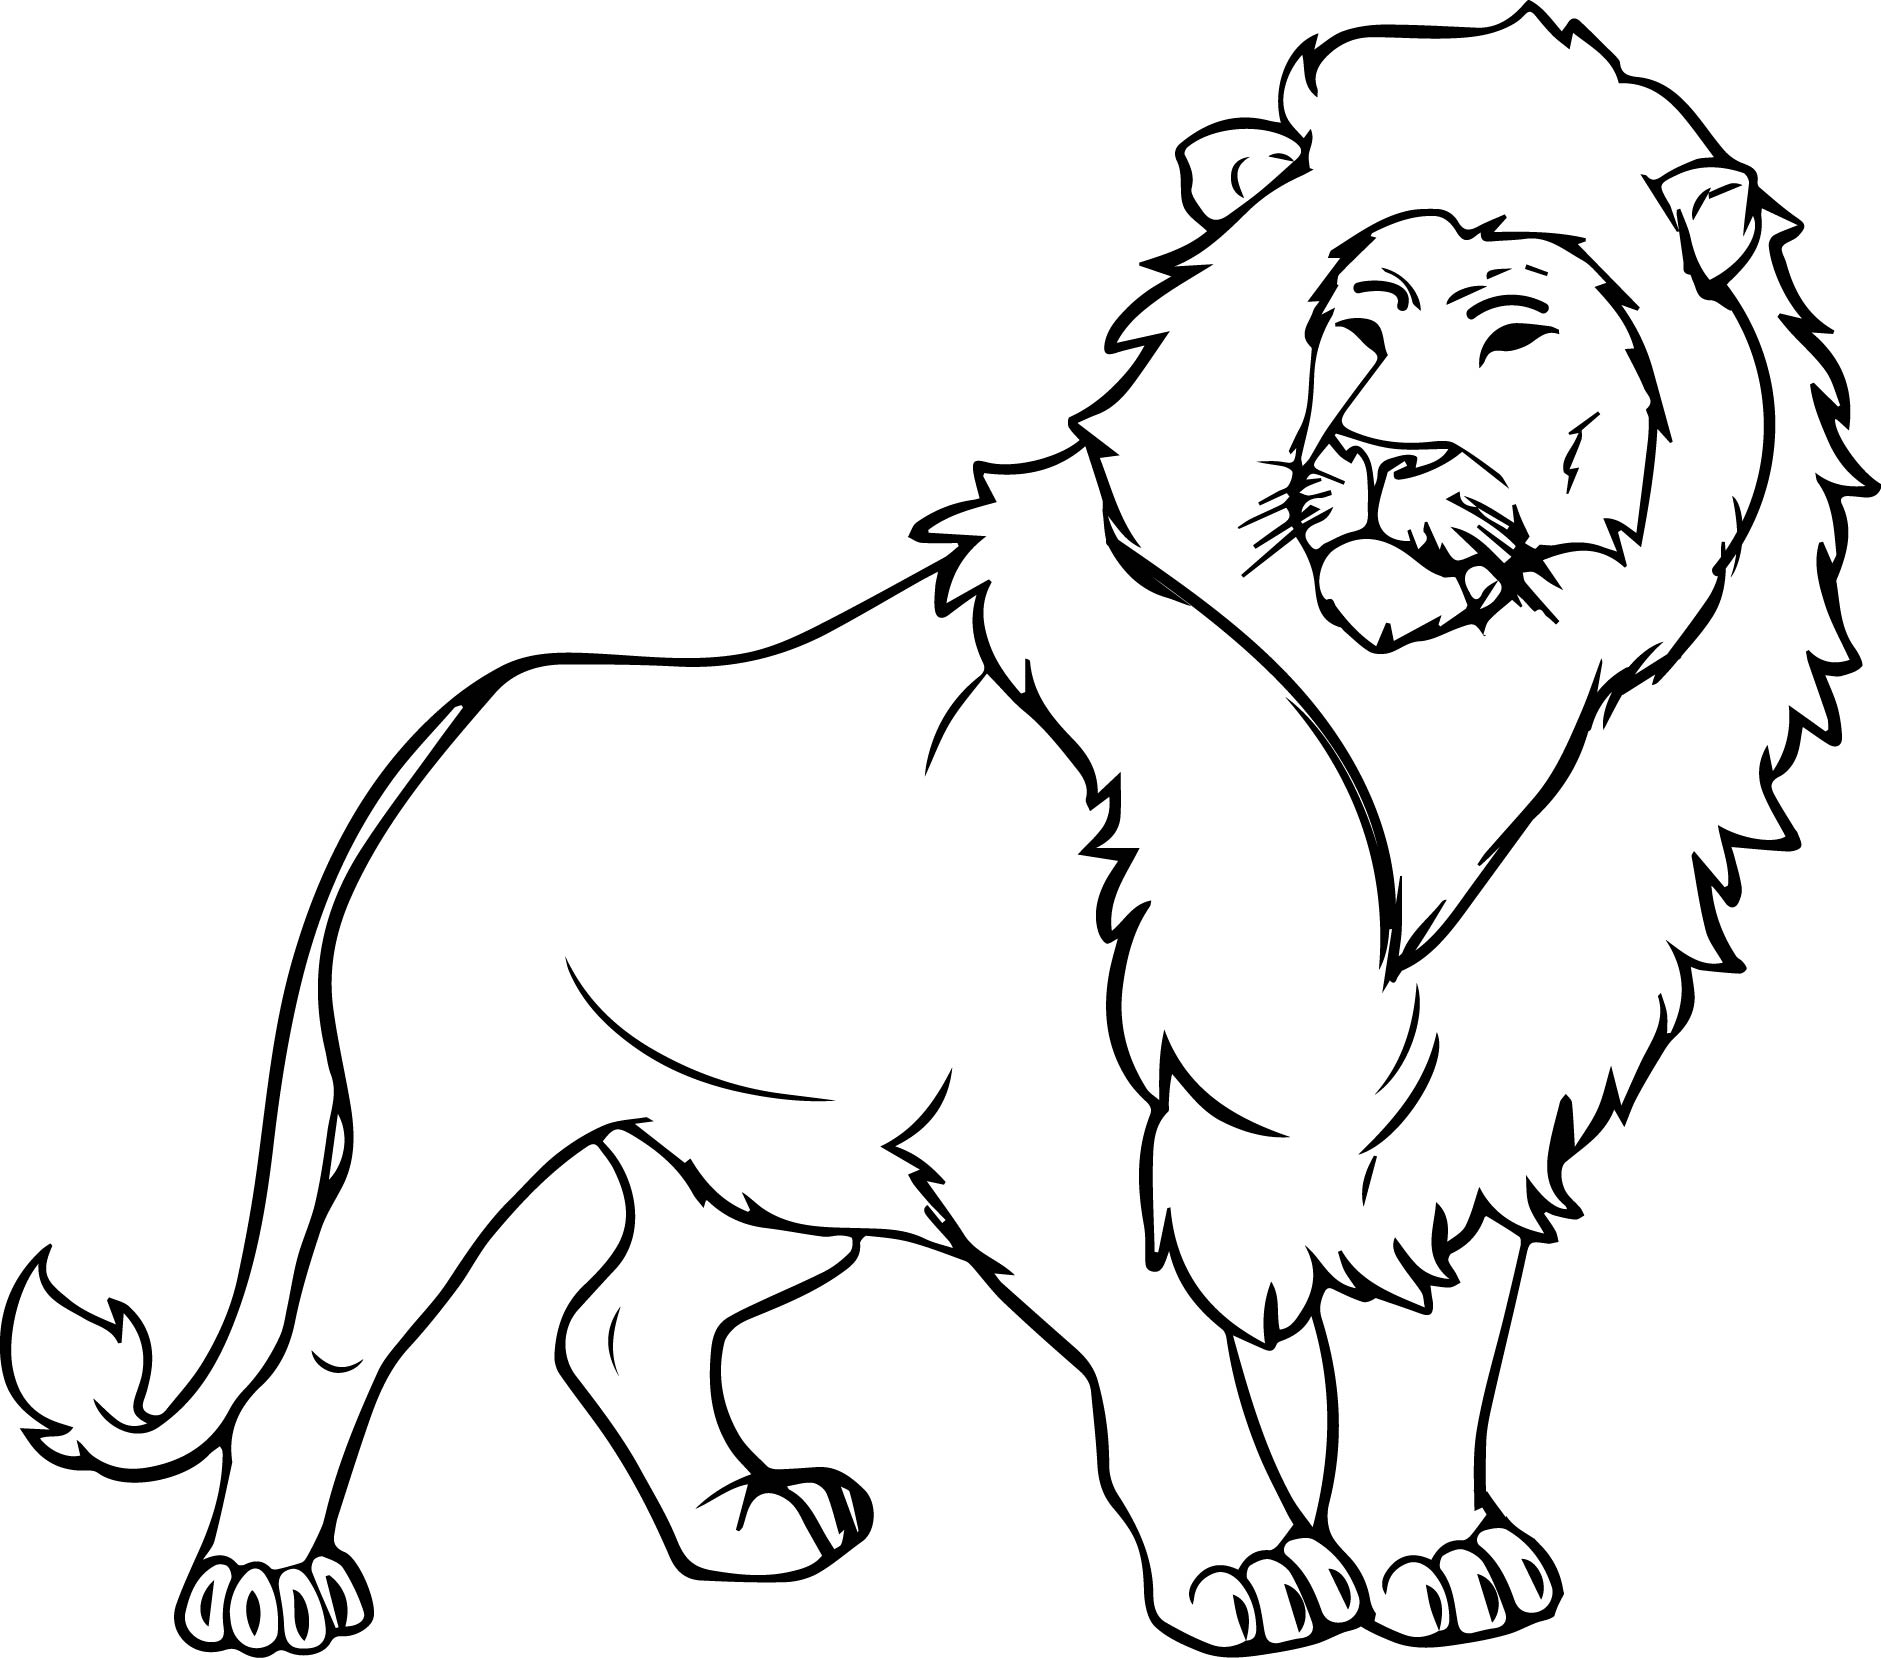 picture of a lion to color library lion coloring pages coloring home a color to lion picture of